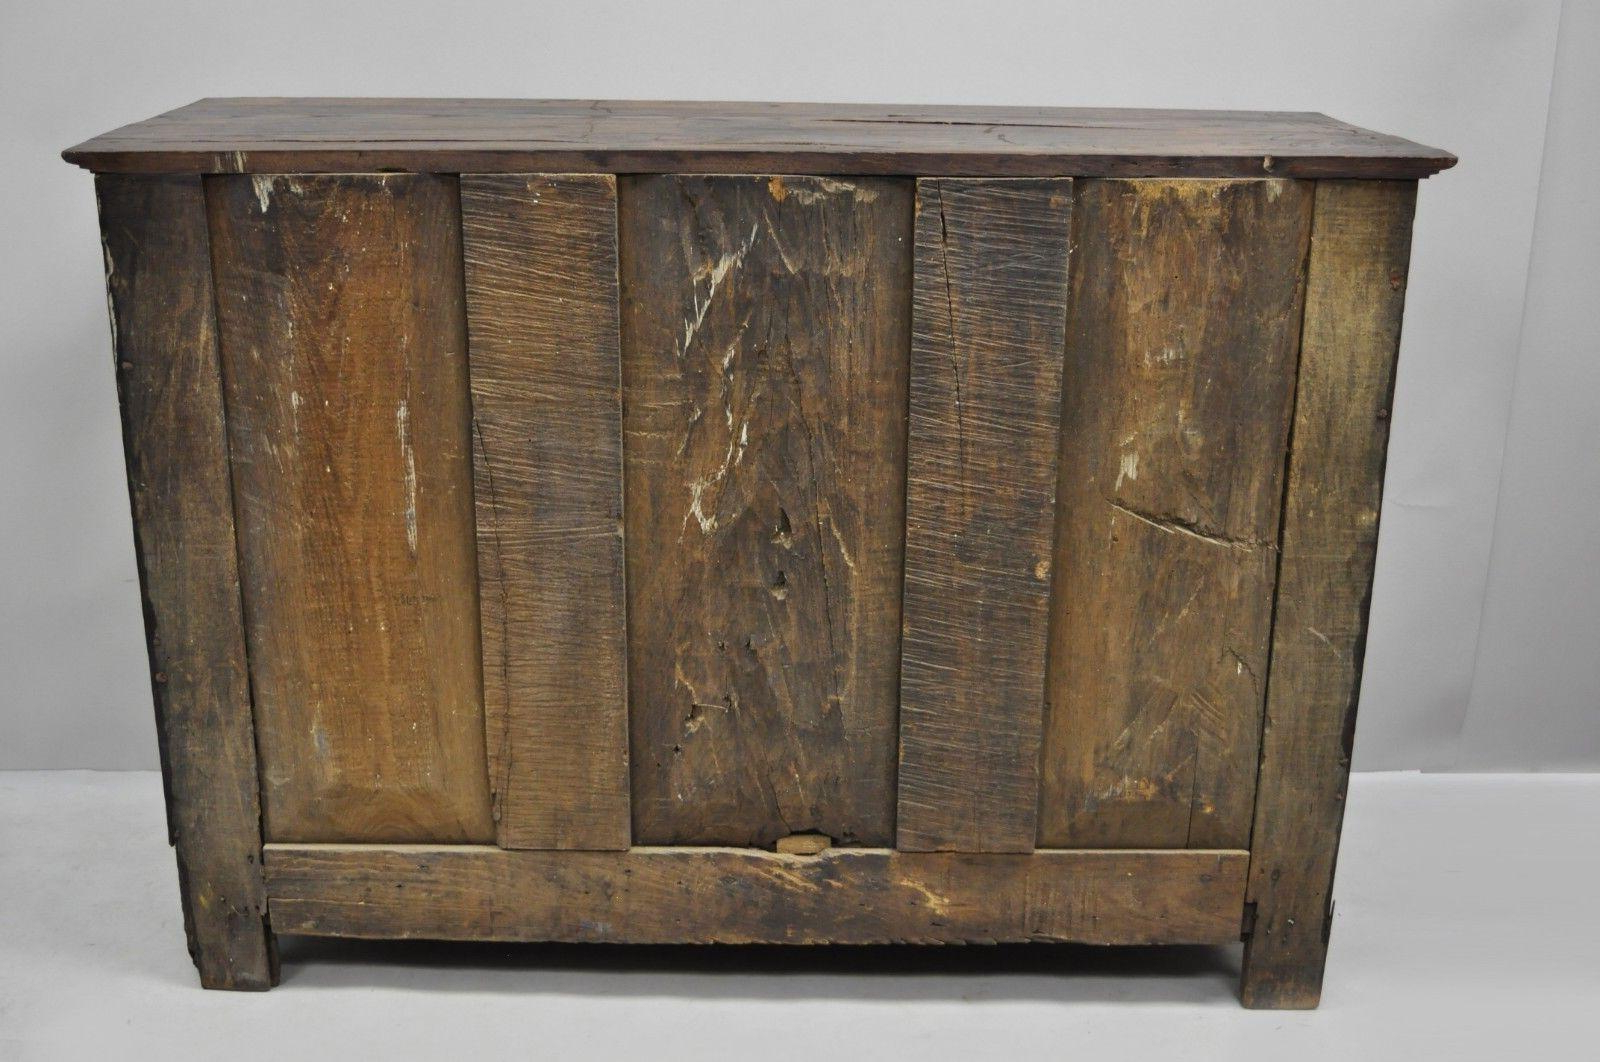 17Th Century Carved Walnut Italian Baroque Two Door Credenza Cabinet Buffet Intended For Vintage Walnut Sliding Door Buffets (Gallery 16 of 20)